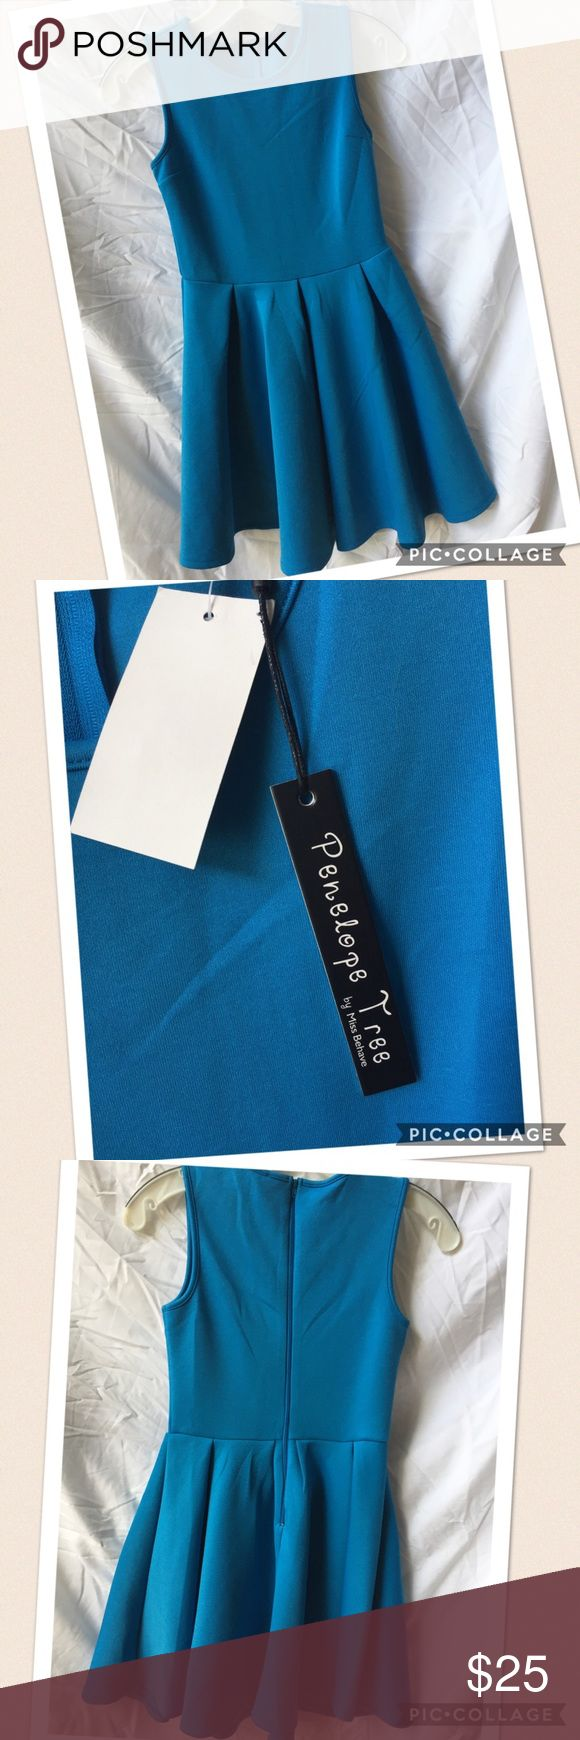 Miss Behave bright blue jersey dress, Size L Penelope Tree by Miss Behave dress in a stretchy jersey fabric.  Zip up back.  Sleeveless.  NWT, size L. Miss Behave Dresses Casual